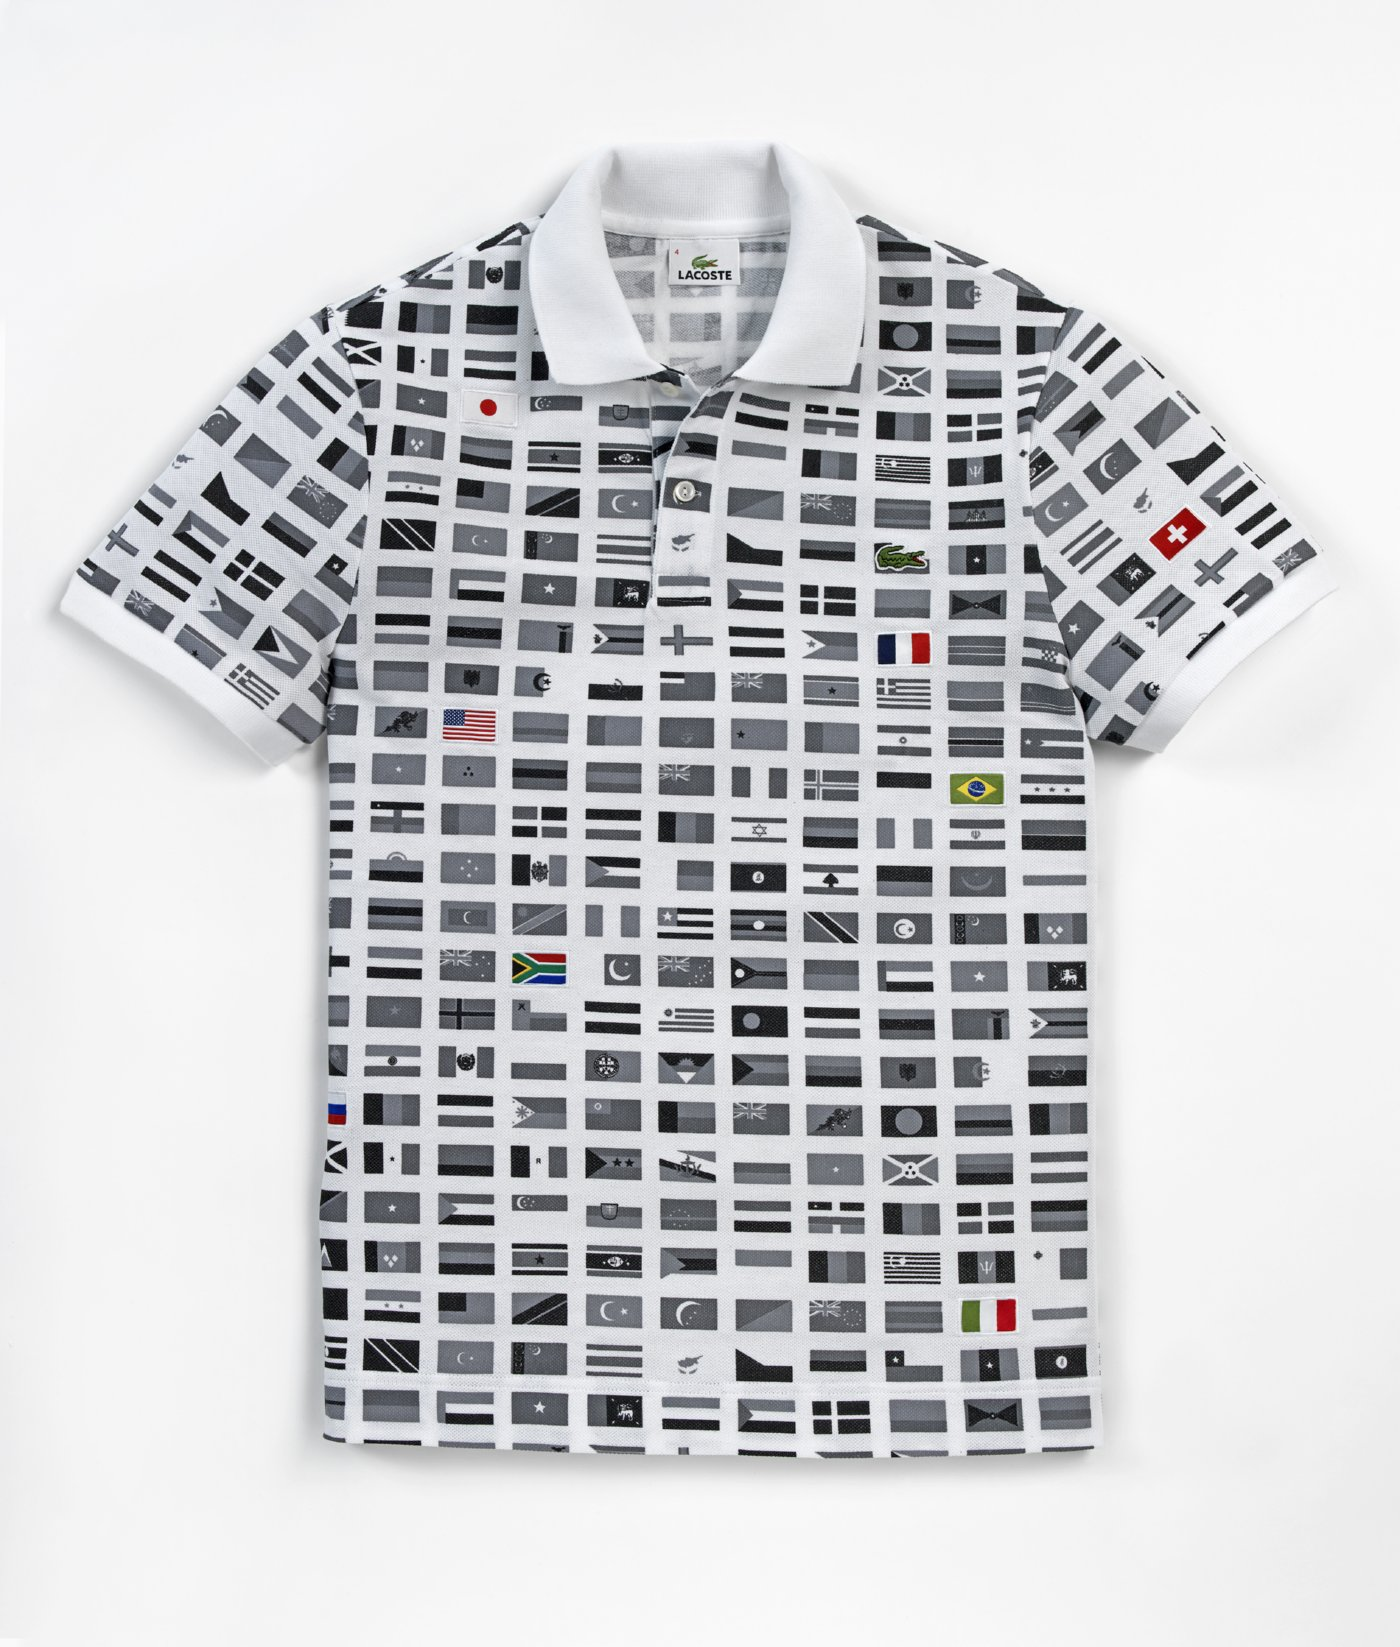 lacoste_flag_limited_edition_polo_-all-flags.jpg